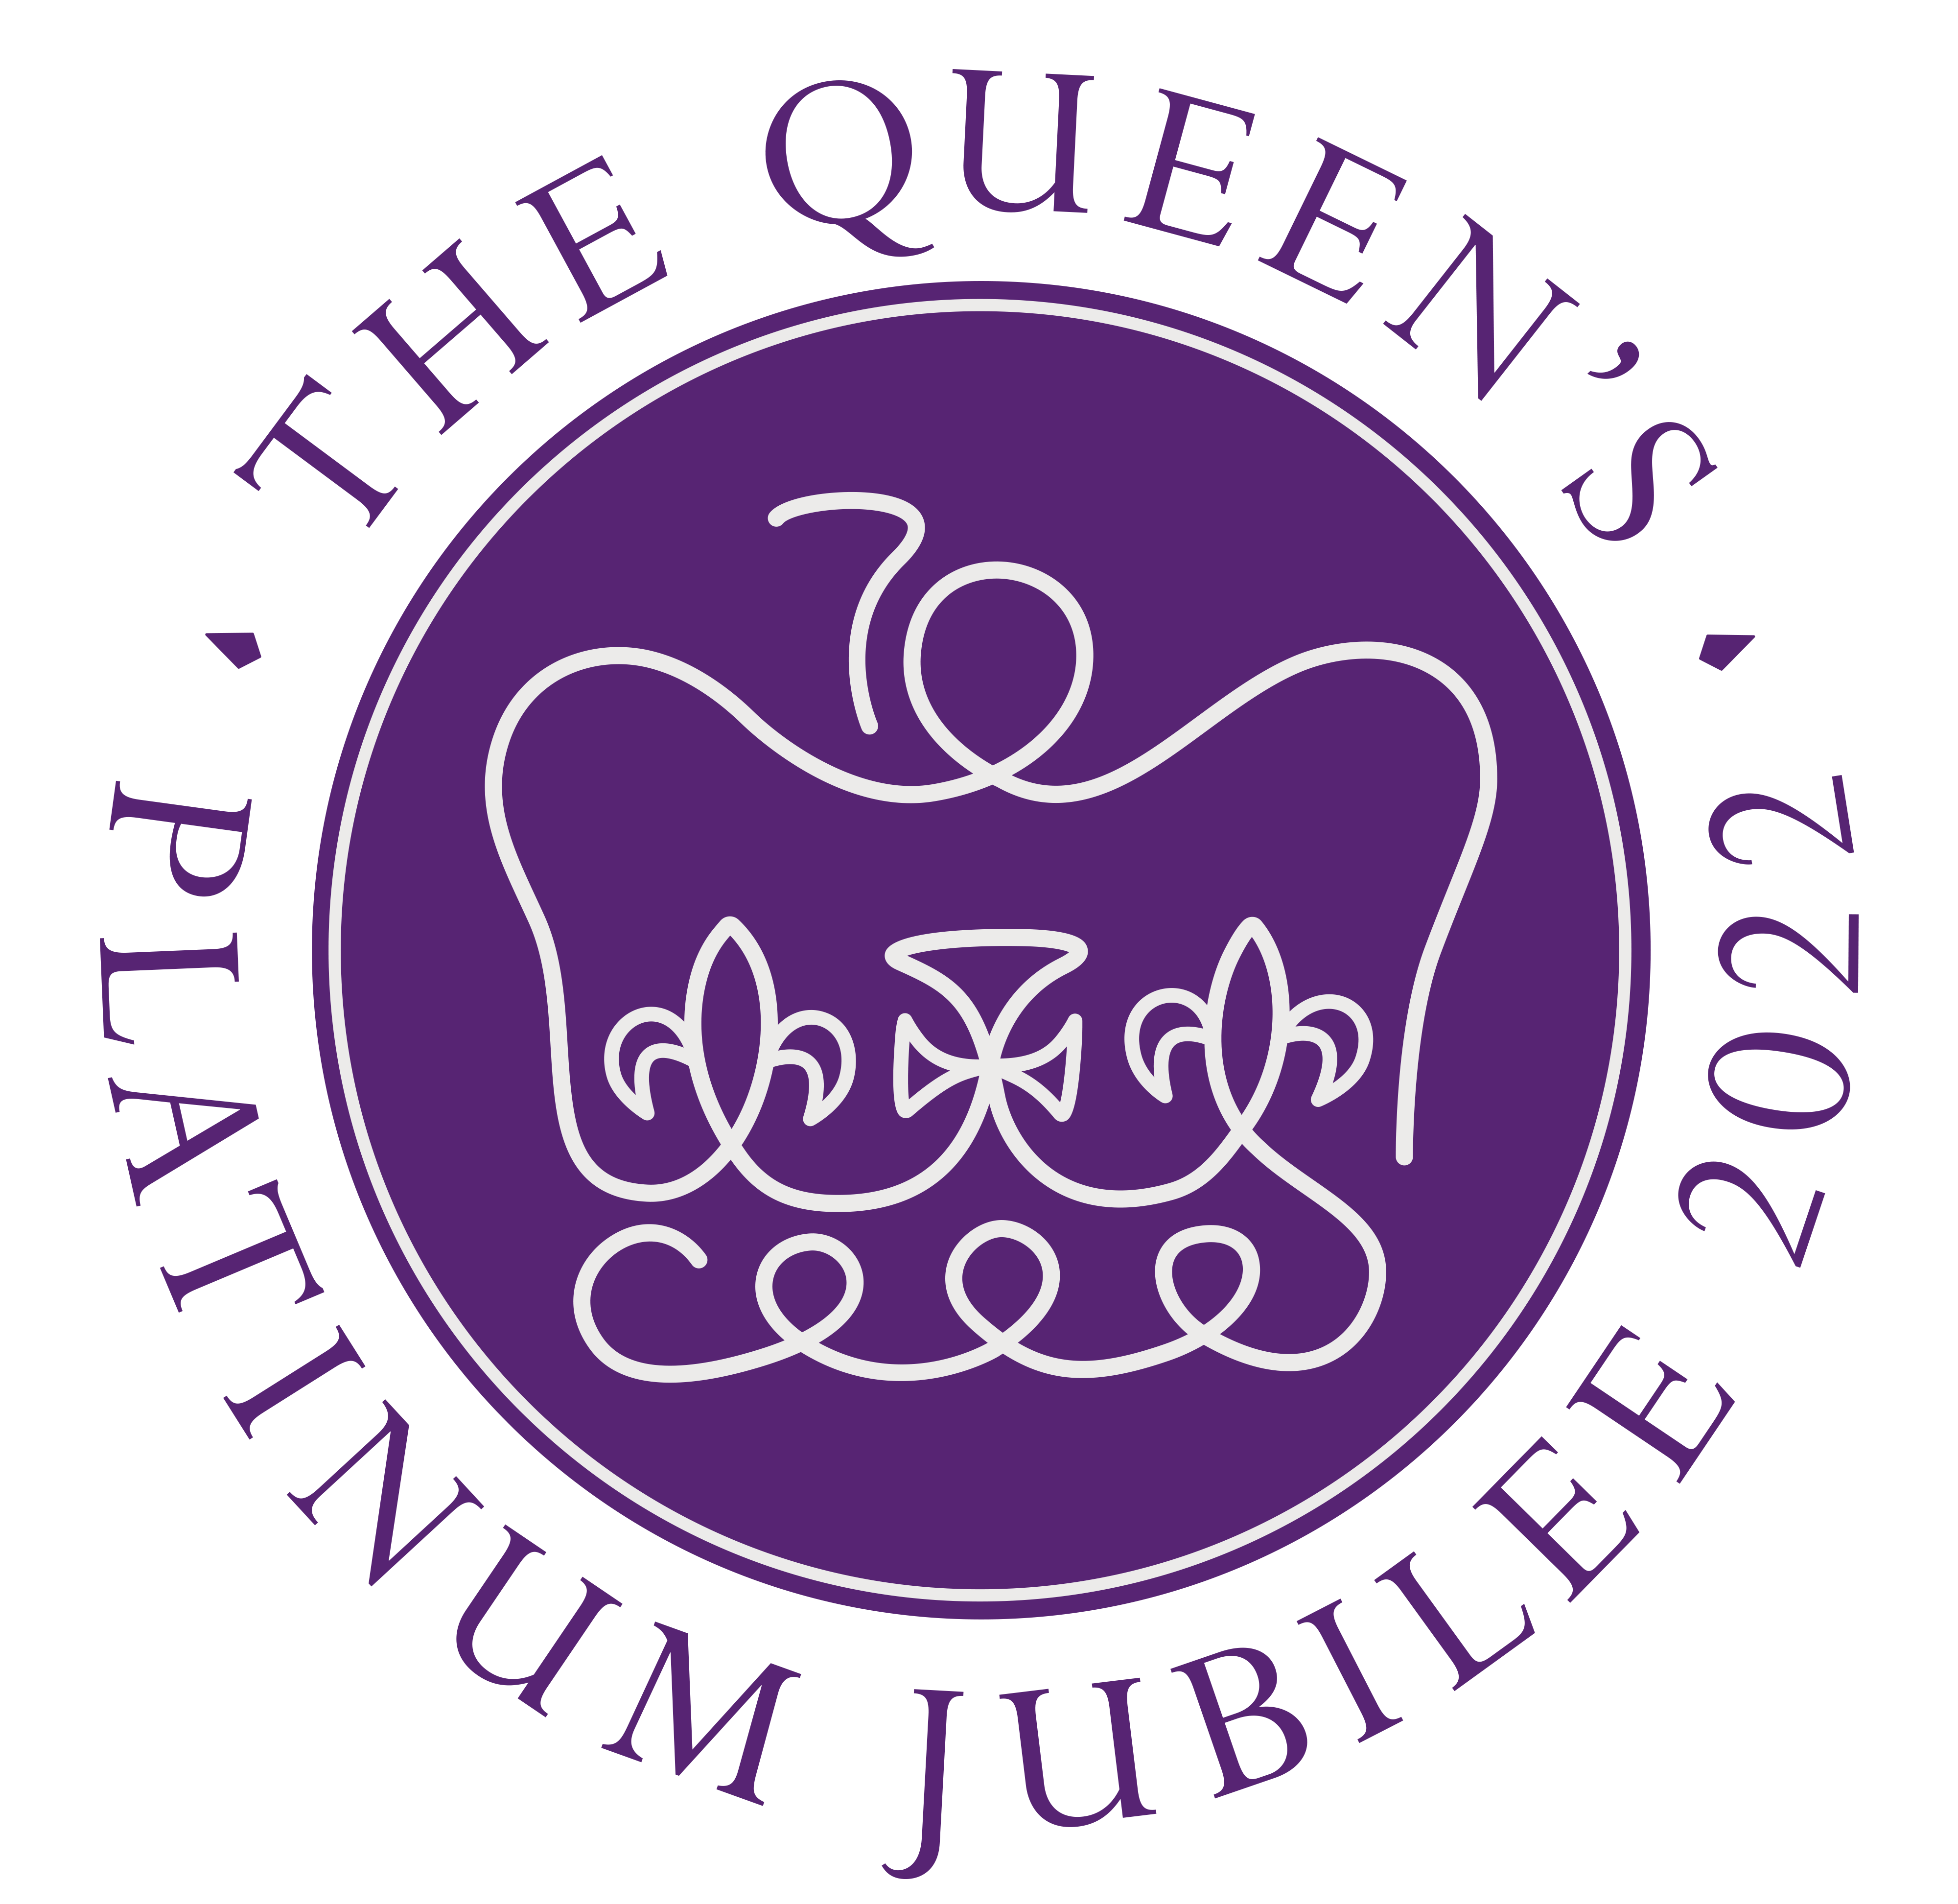 queens_platinum_jubilee_english_0.png